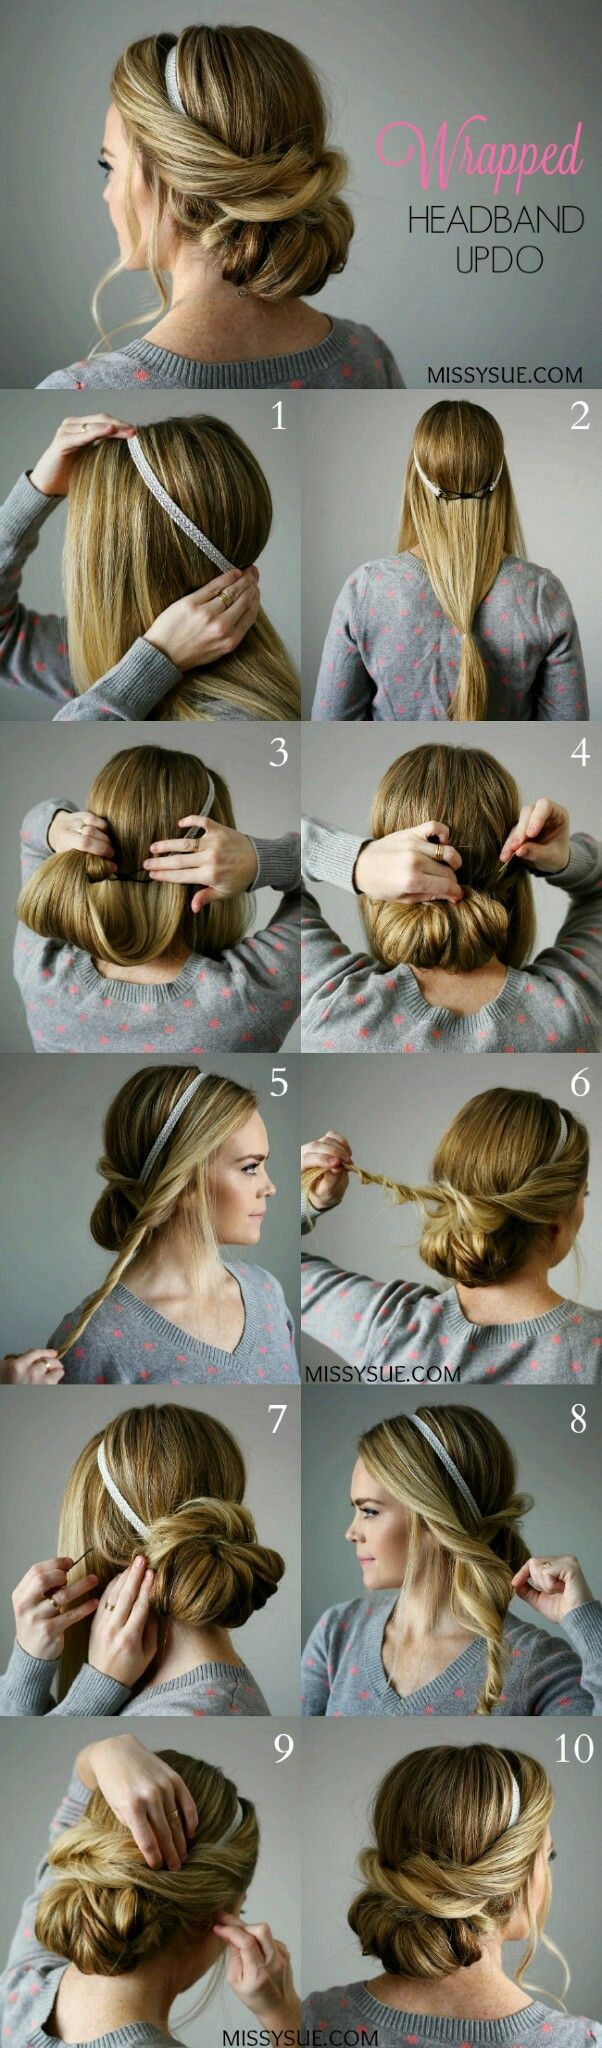 Cute Quick Hairstyles 17 Best Peinados Images On Pinterest  Coiffure Facile Hairstyle